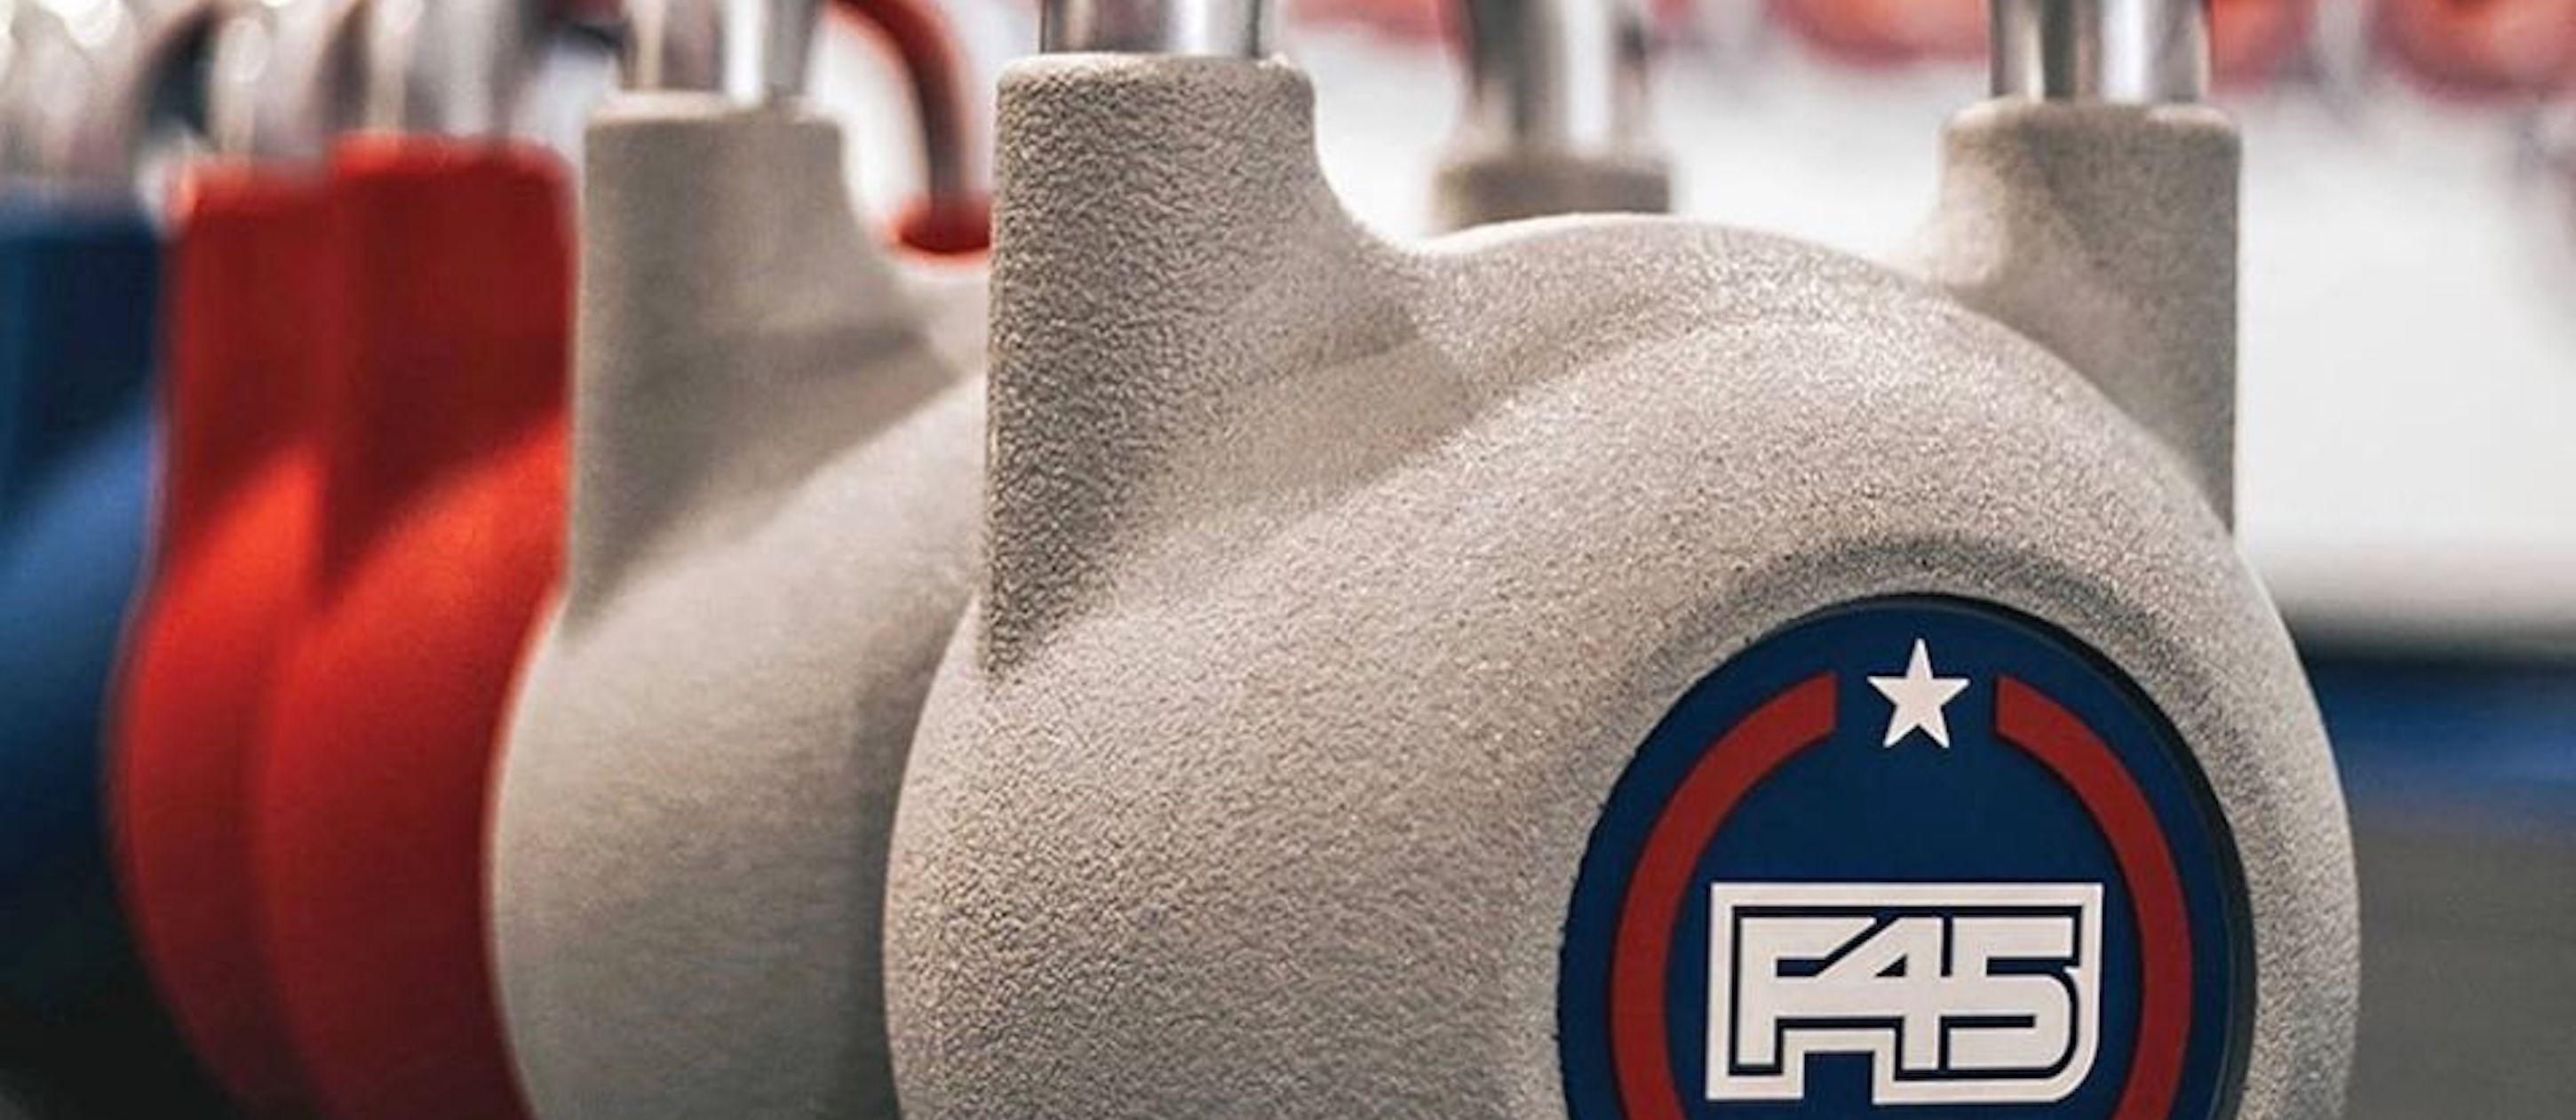 Kettlebells with the F45 logo